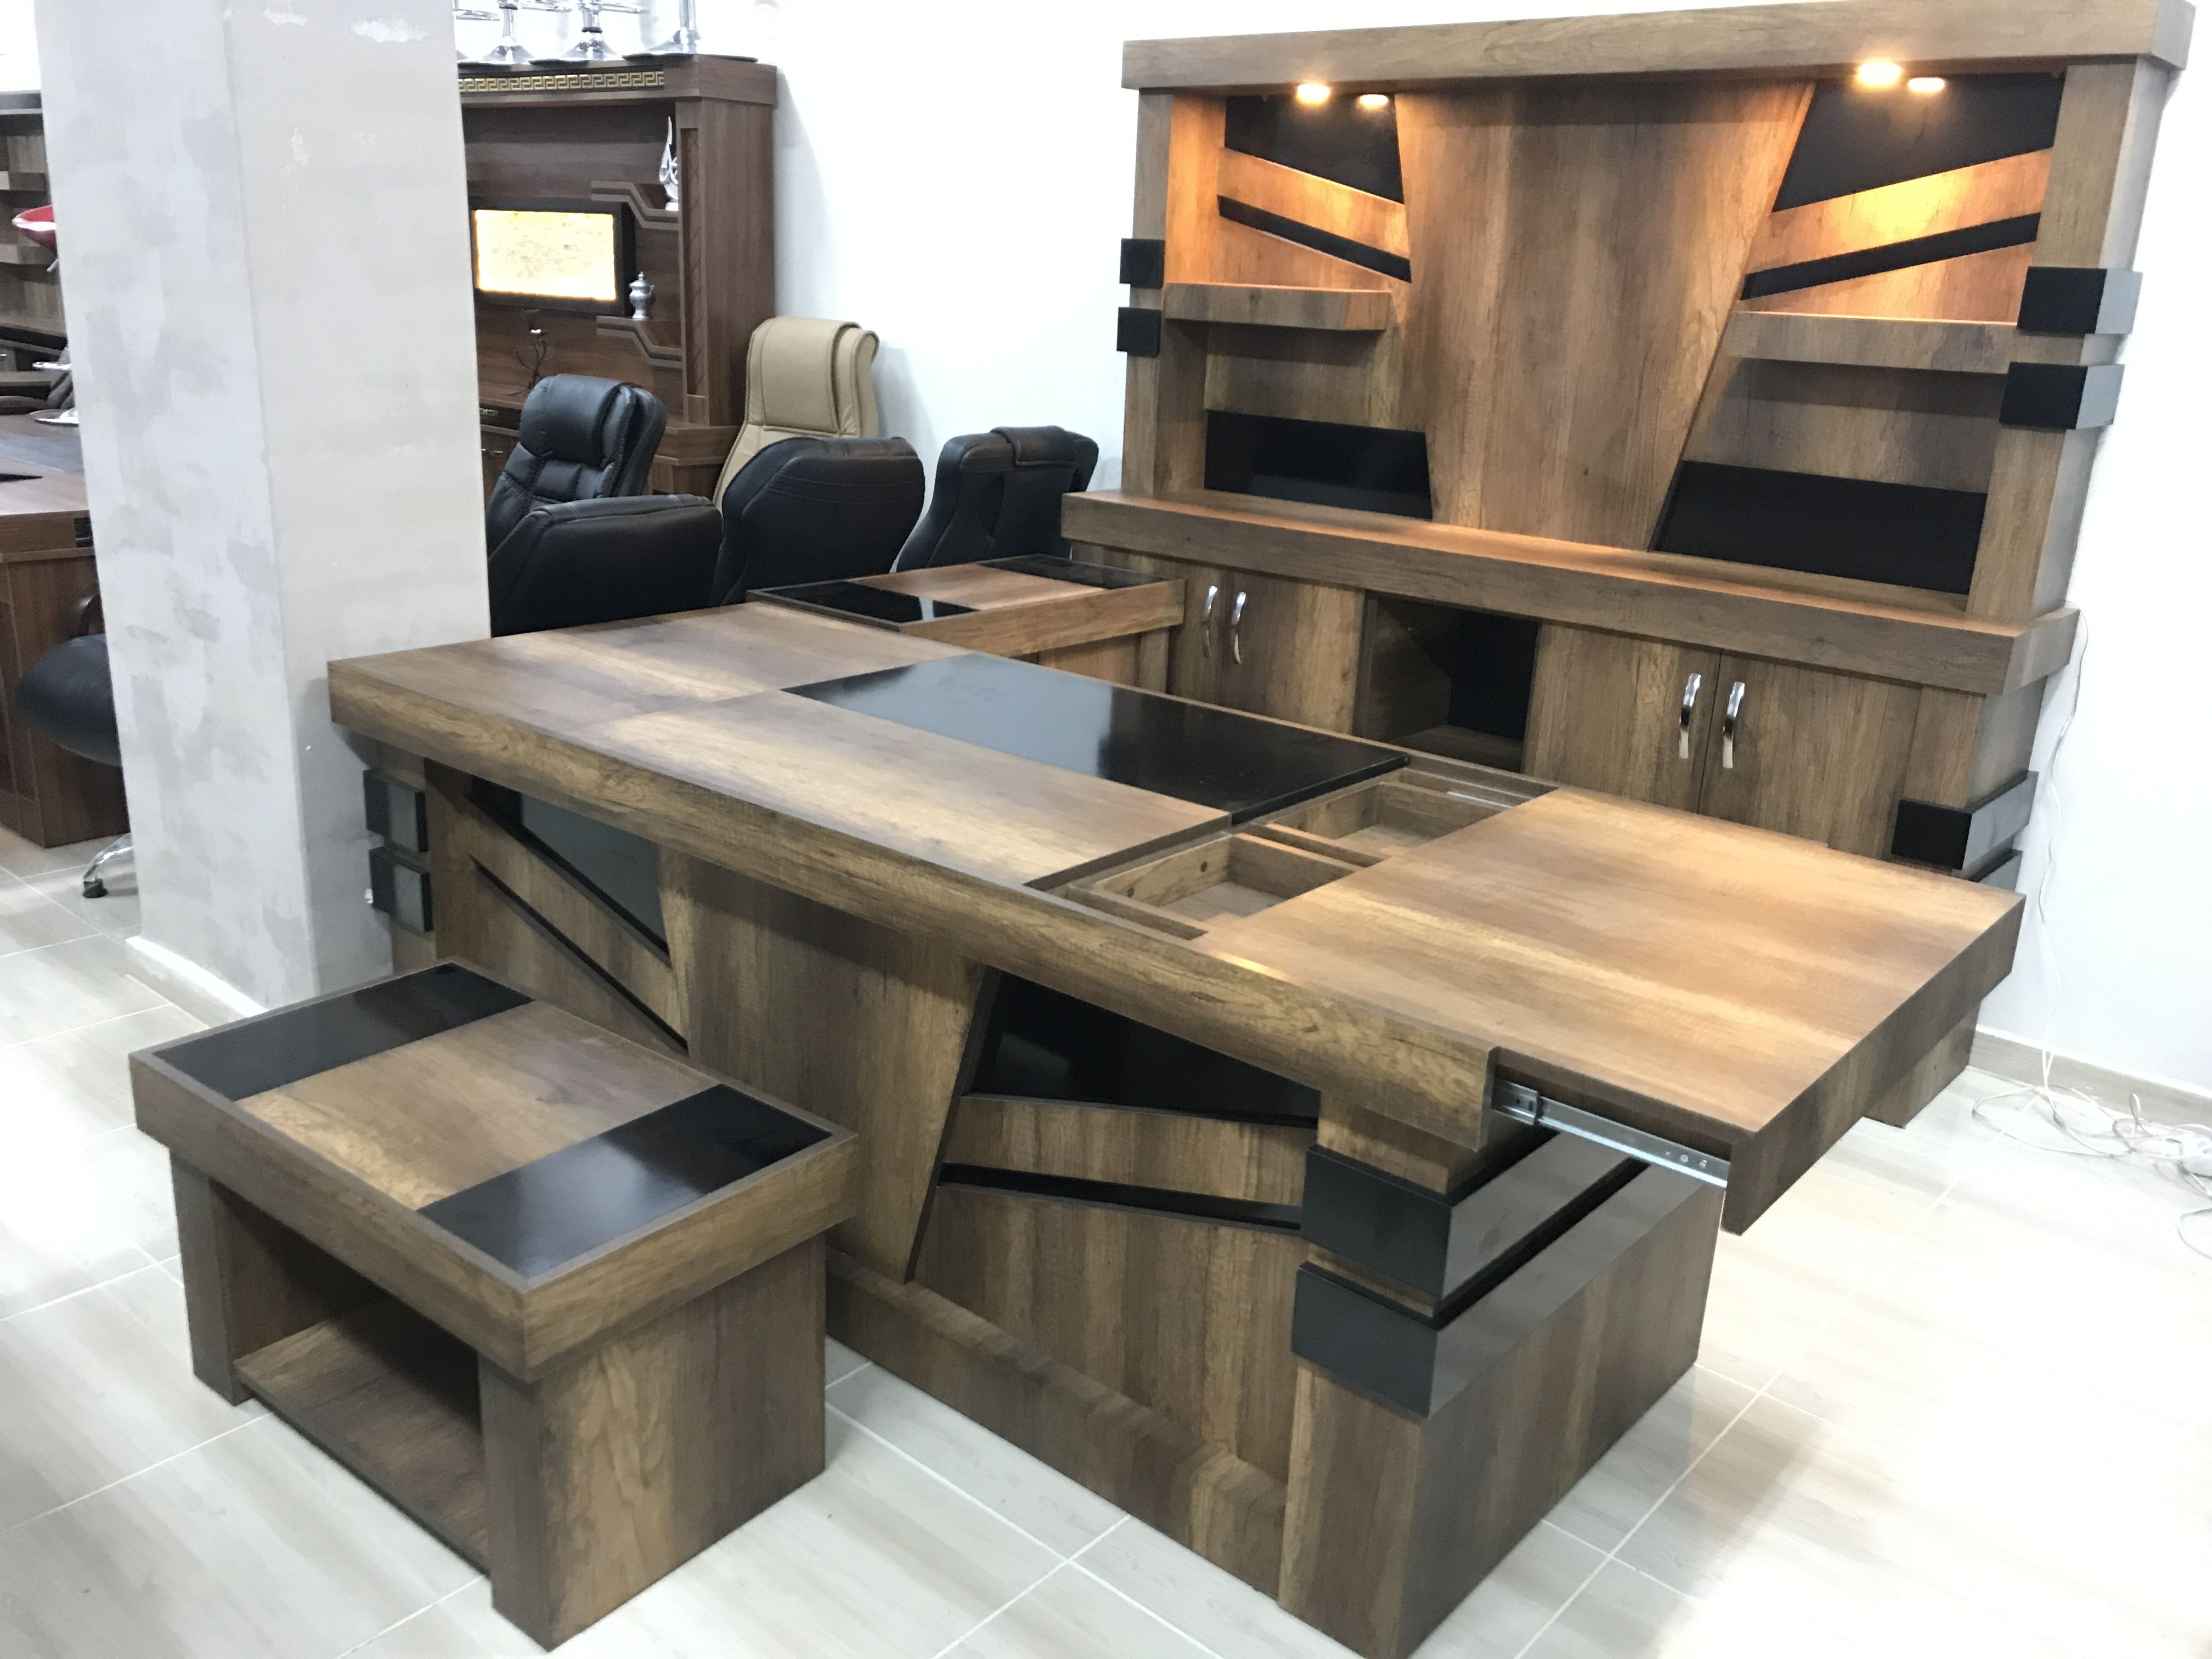 Pin By Samuel Onsy On Desk Dimensions In 2020 Office Table Design Luxury Office Furniture Desk Dimensions